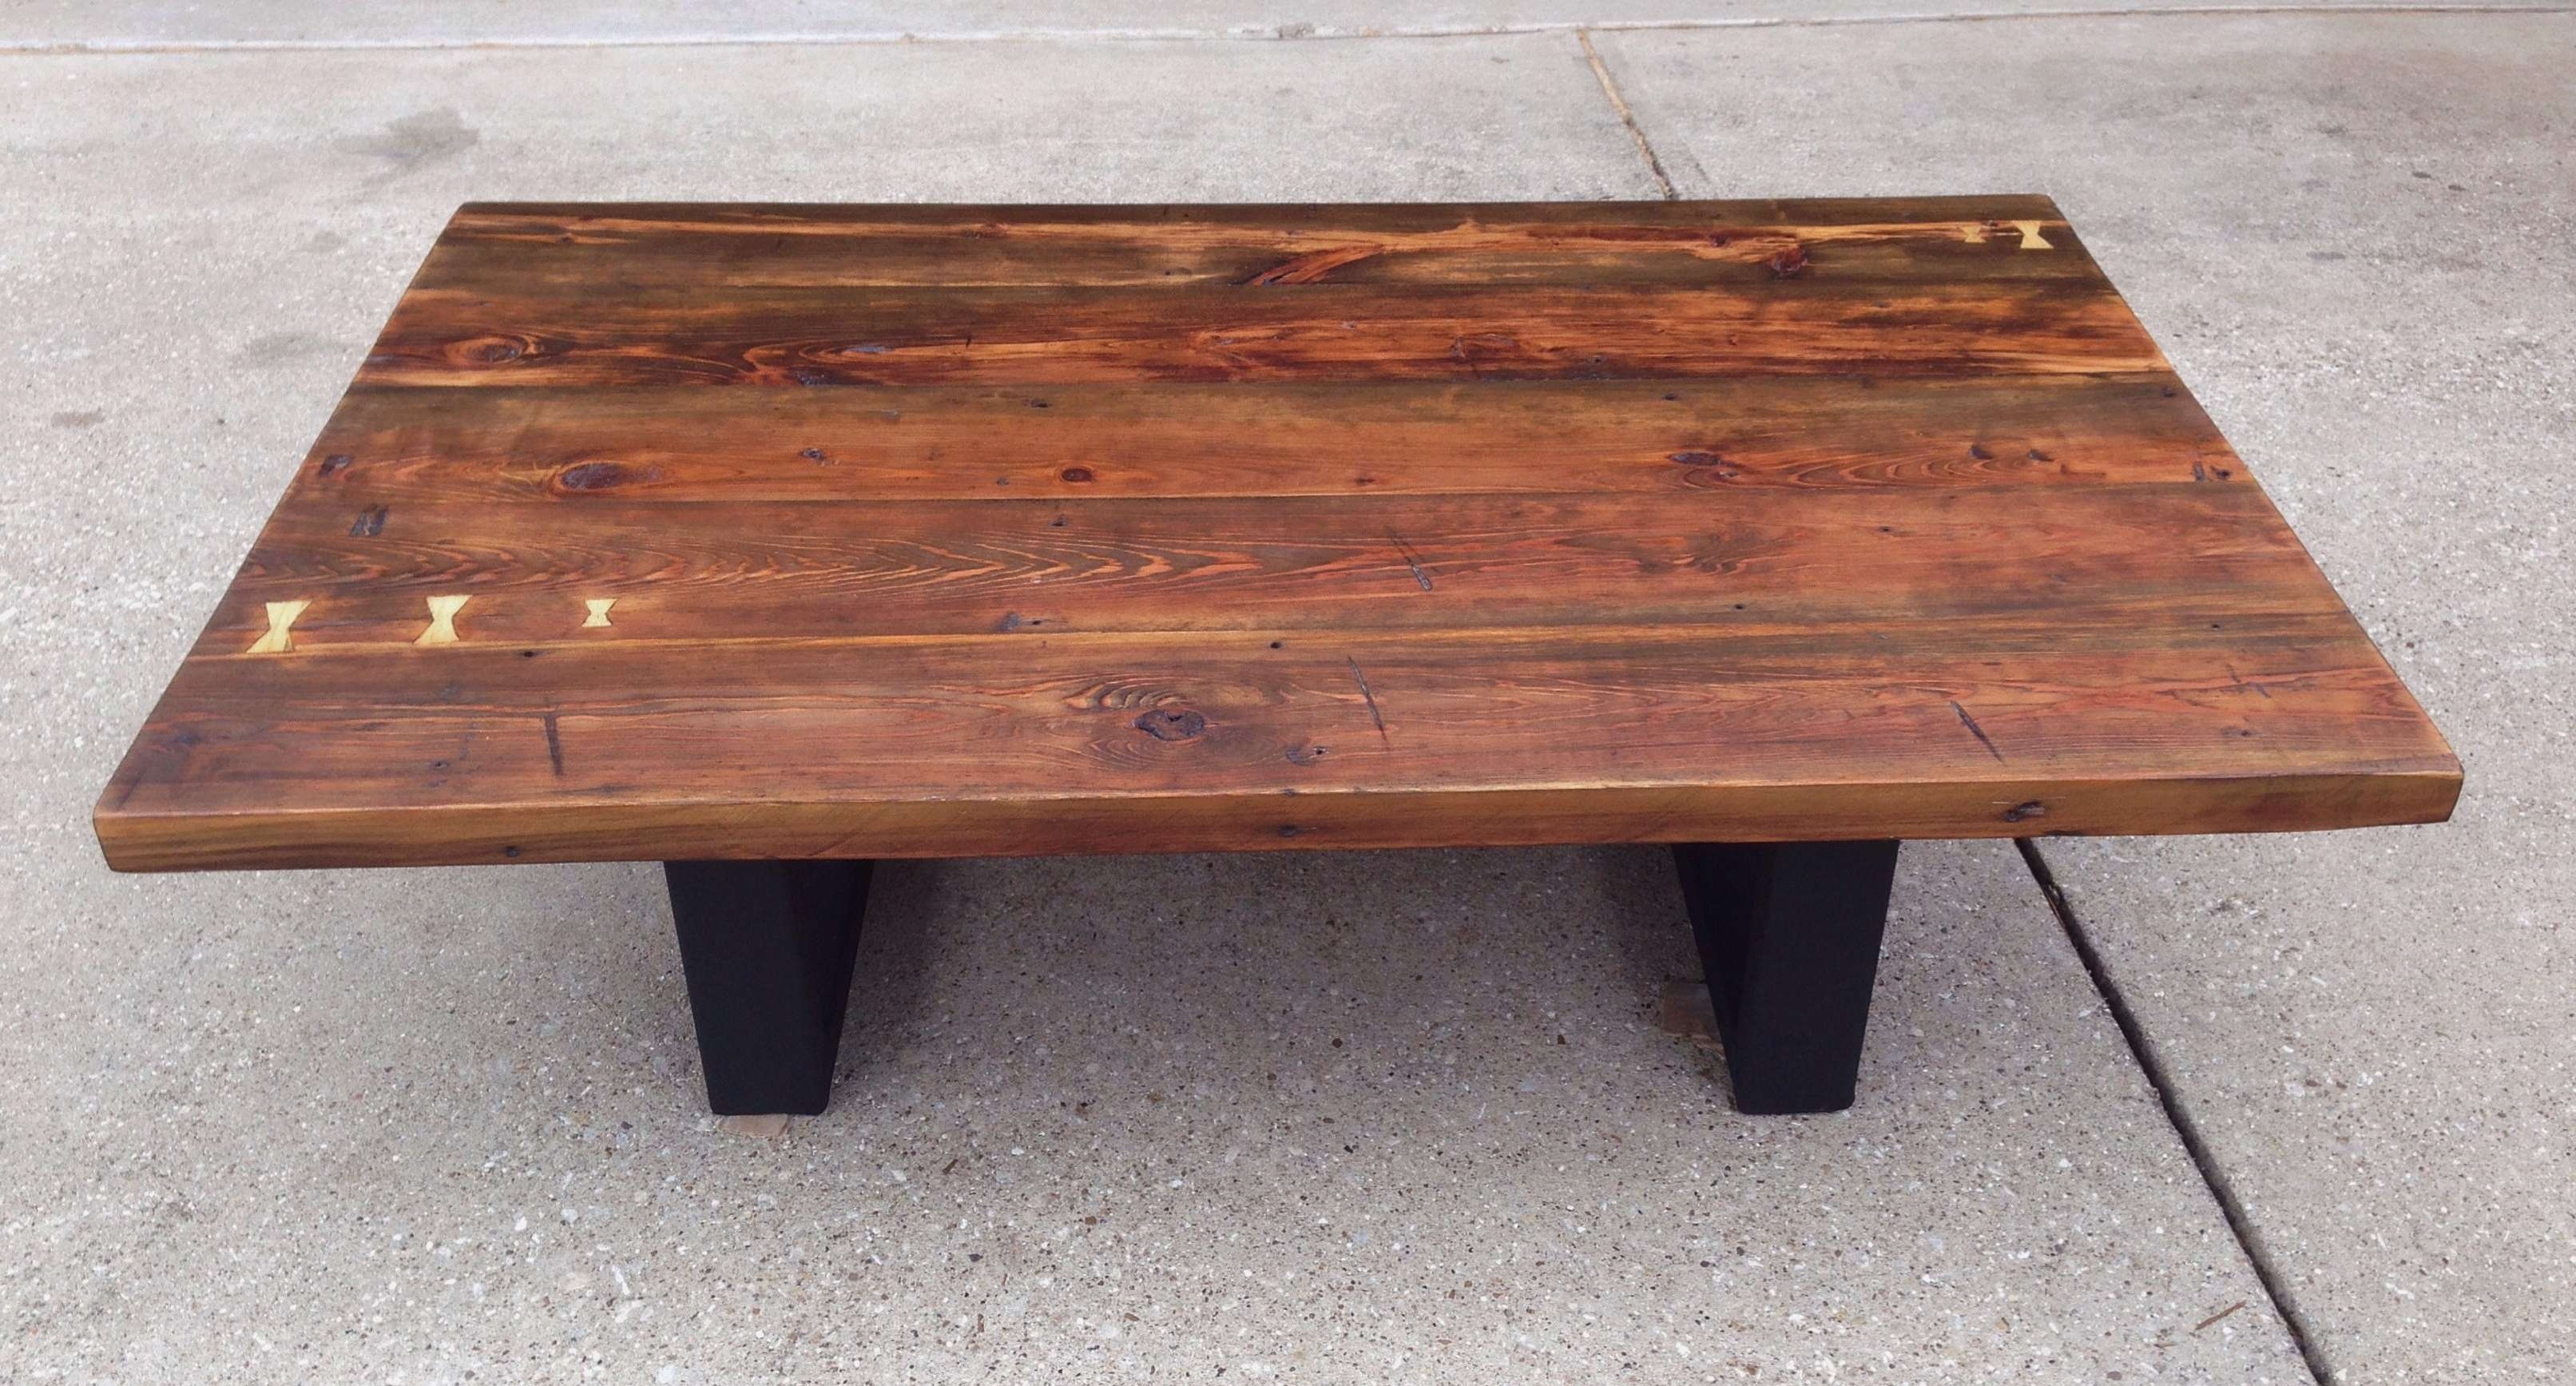 Newest Square Pine Coffee Tables For Coffee Table : Coffee Table Pine Square Excellent Photo Concept (View 11 of 20)